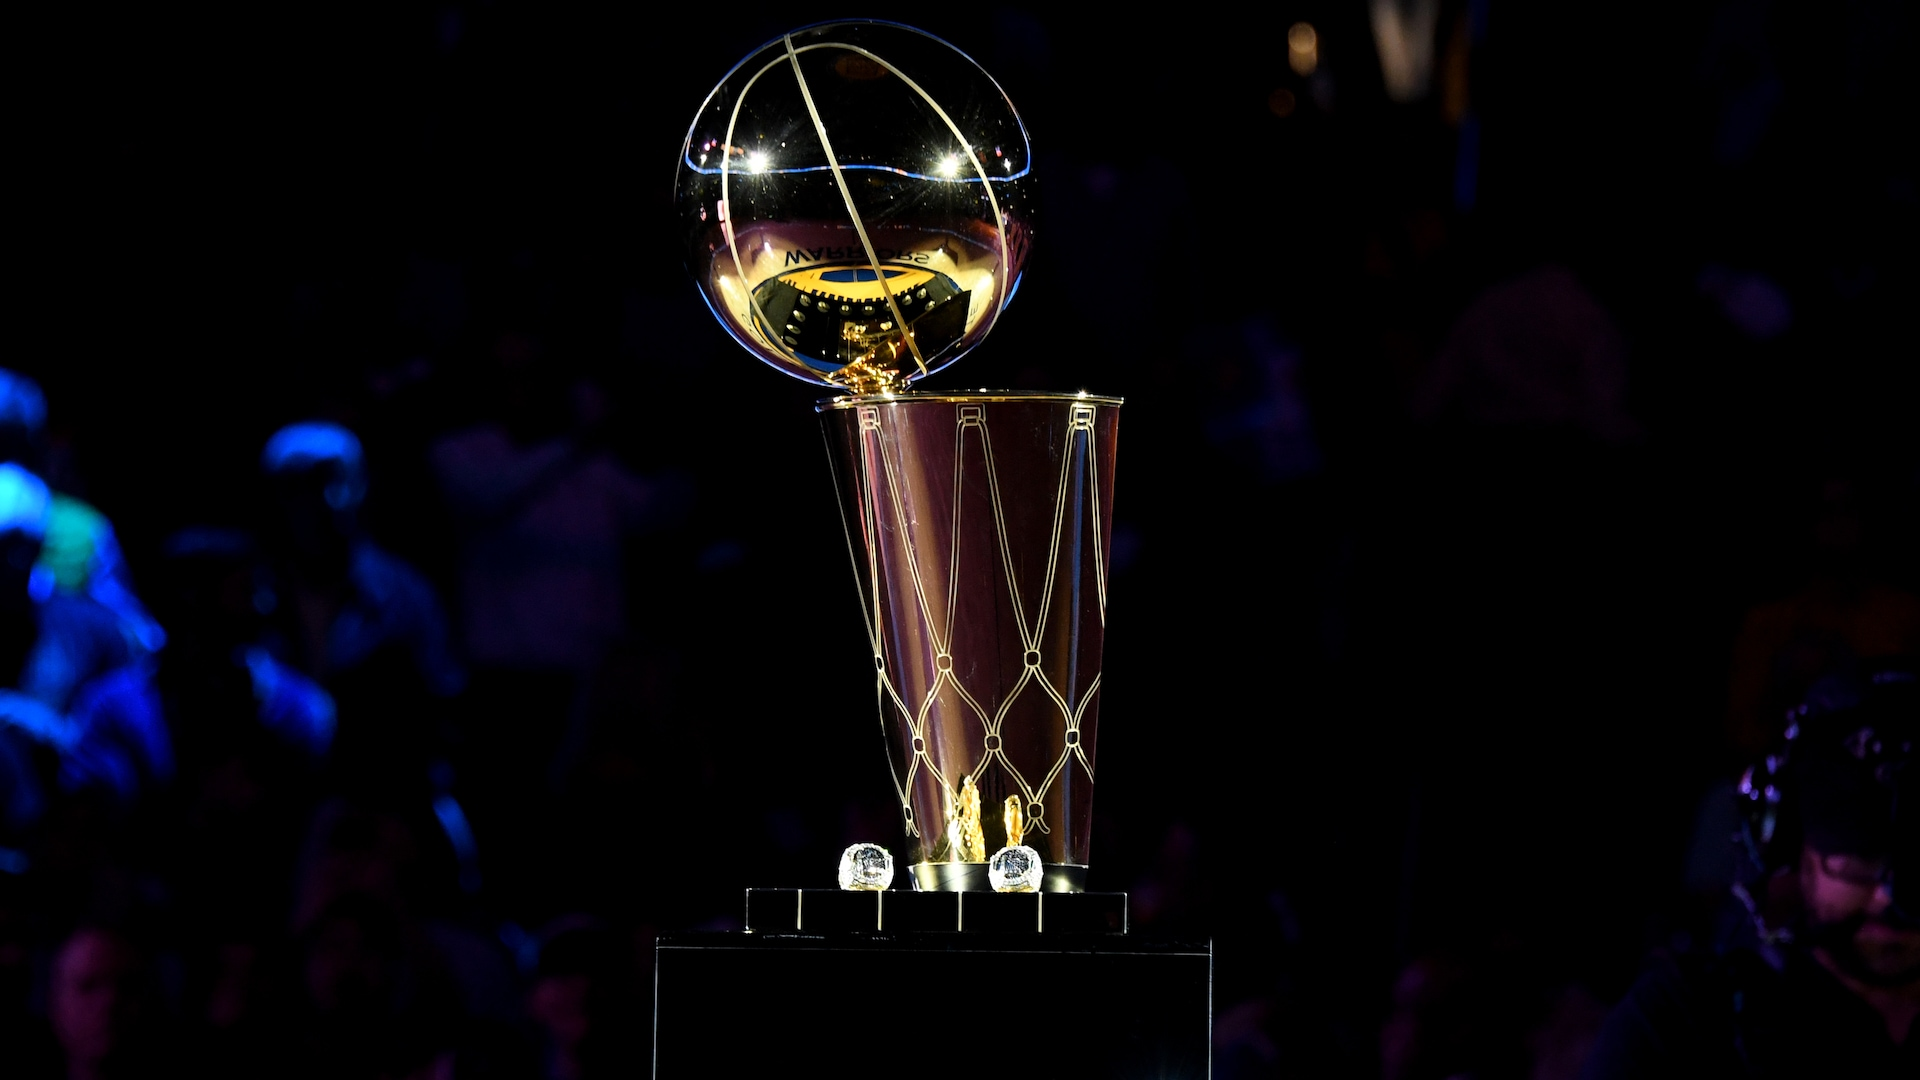 Louis Vuitton to produce travel case for Larry O'Brien trophy